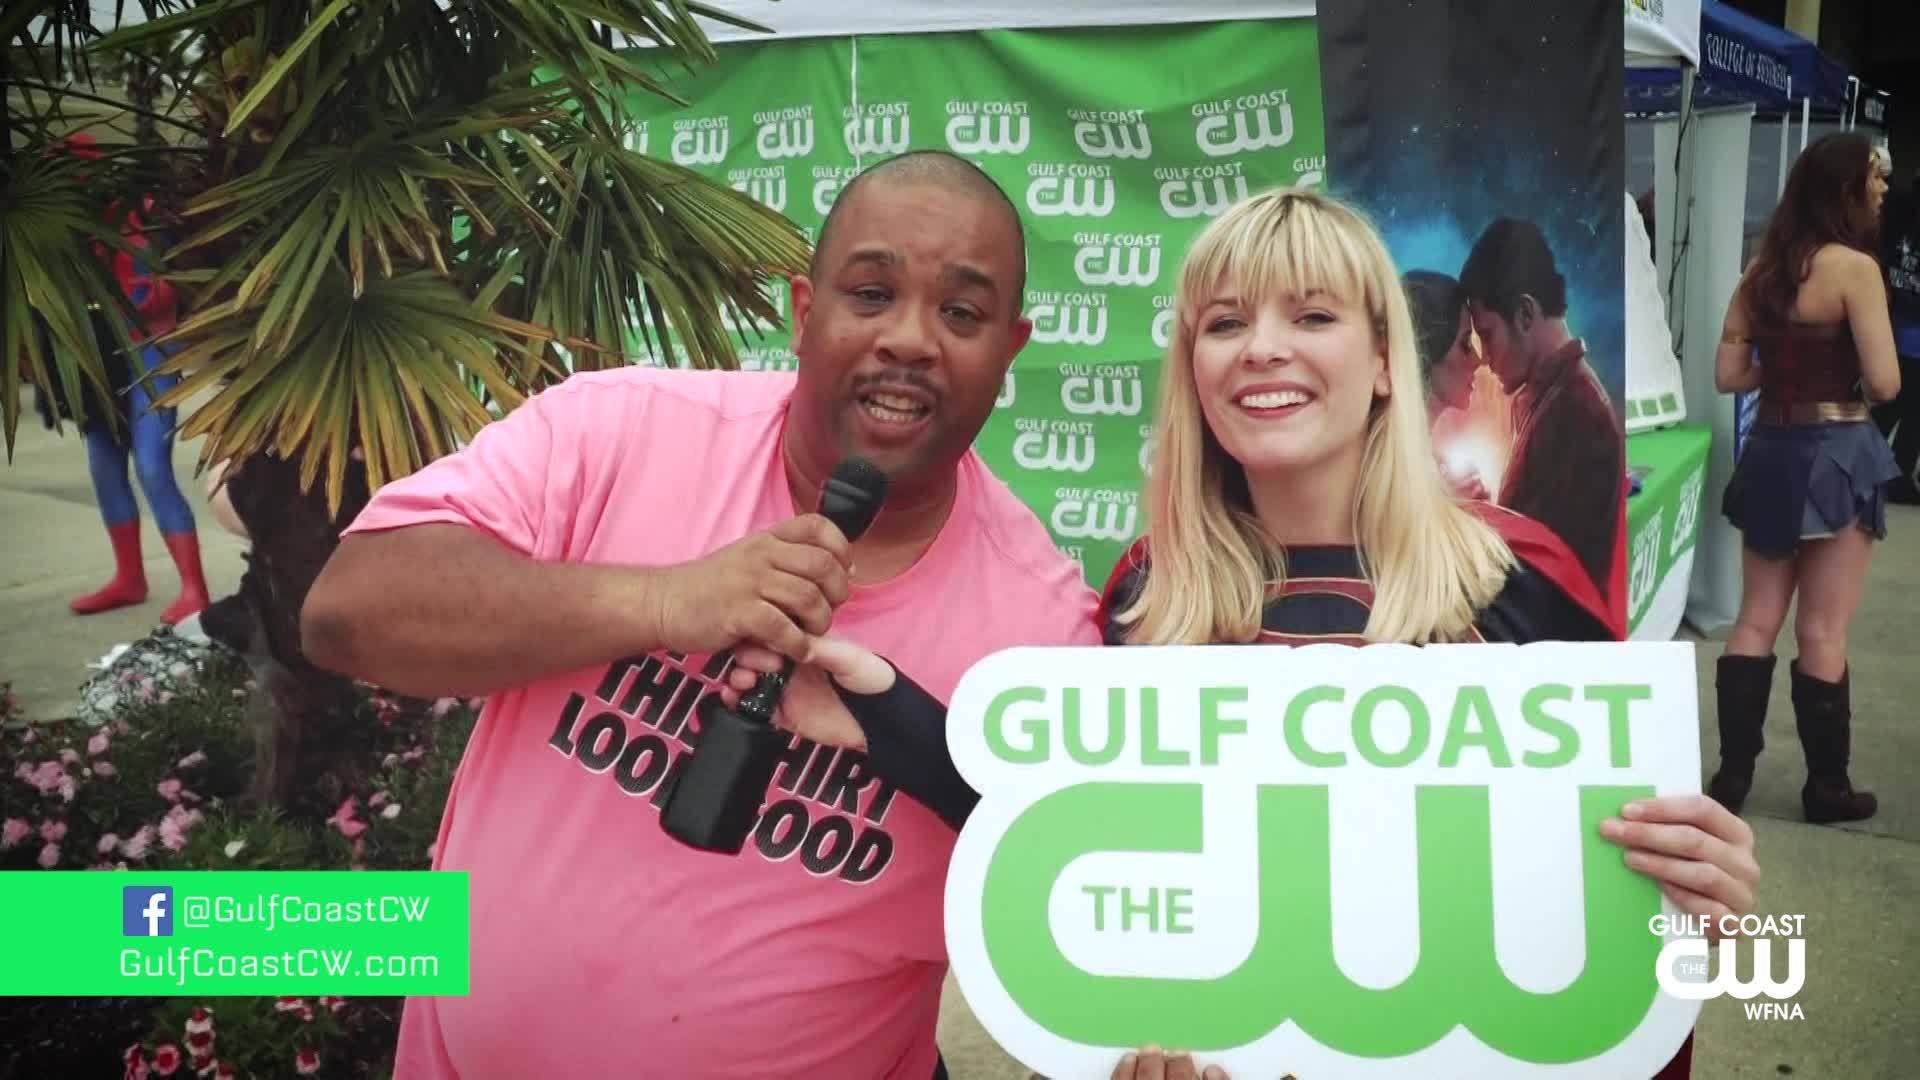 The GCCW Team had a fantastic time connecting with local viewers and CW fans at Pensacon 2019!